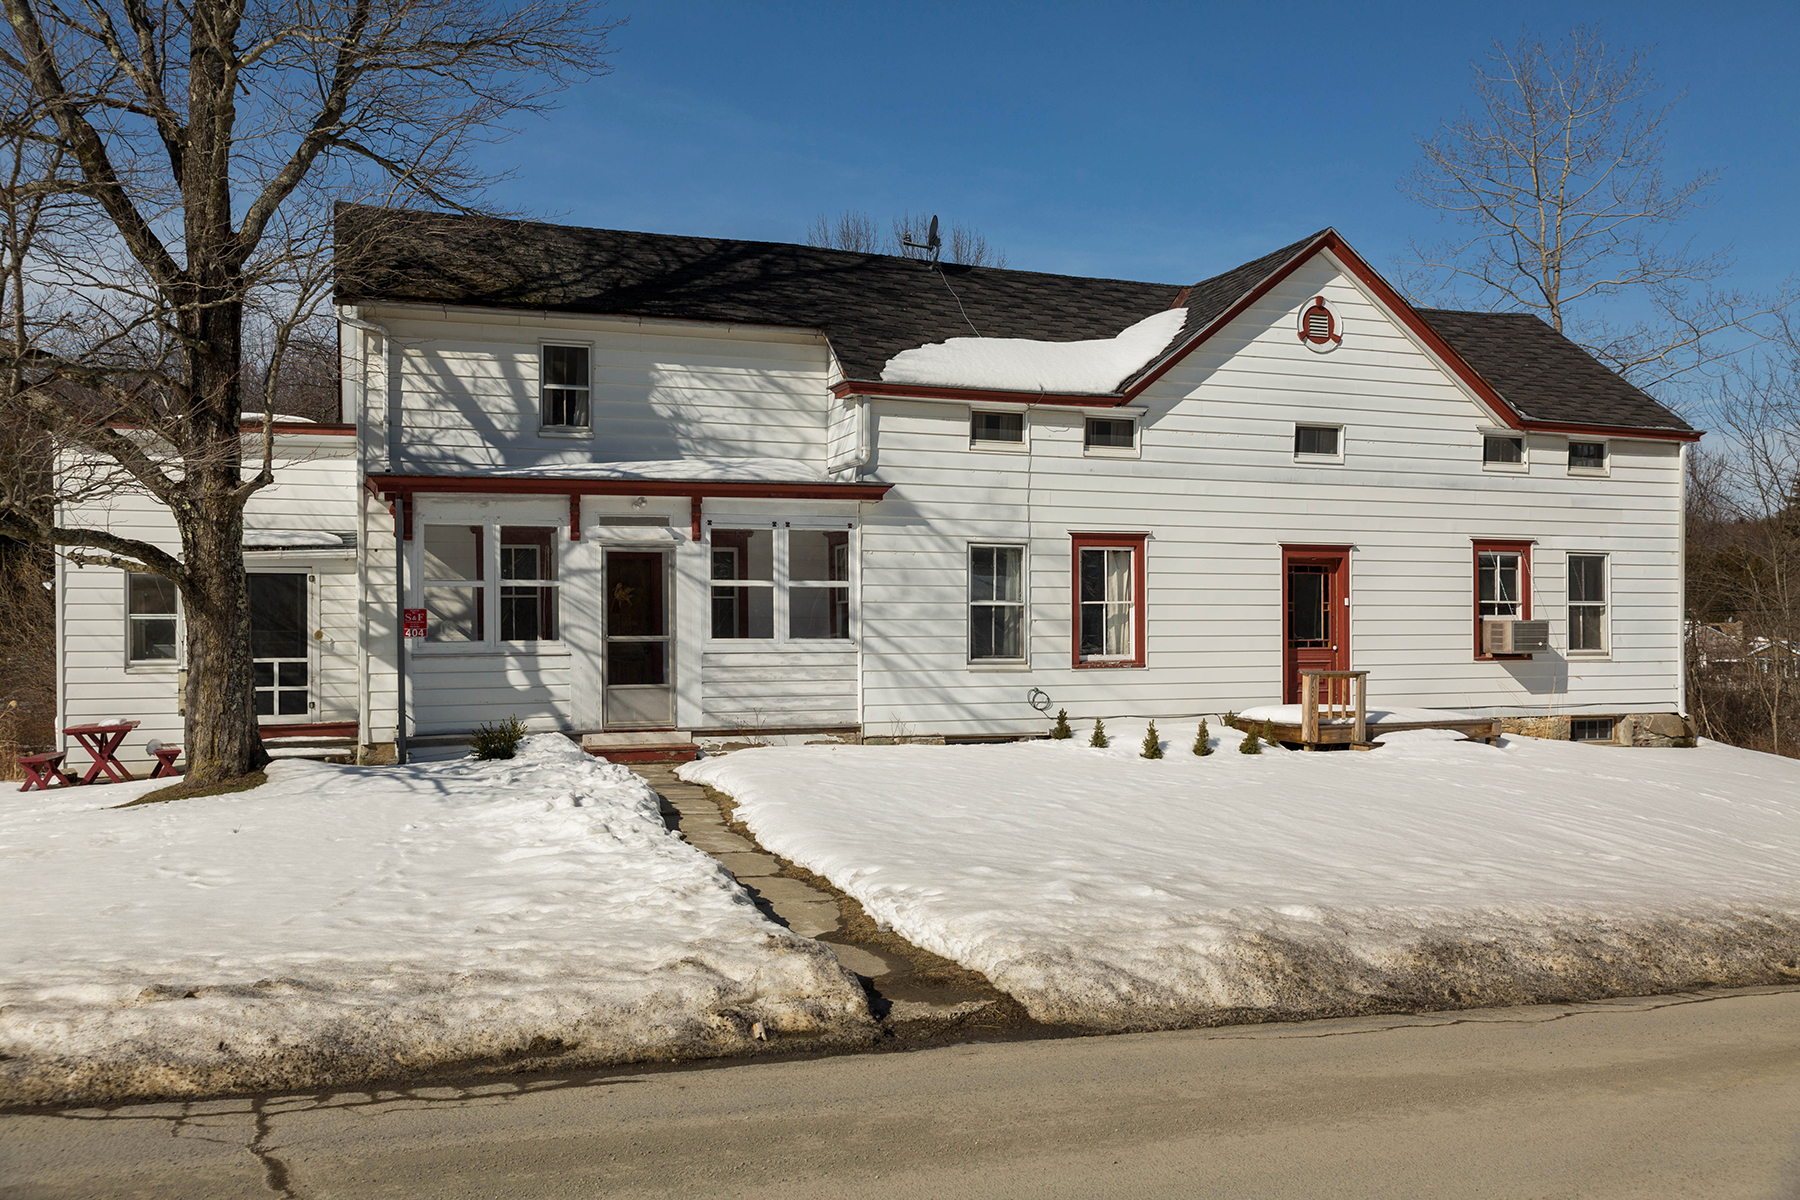 Maison unifamiliale pour l Vente à Enchanting Country Farmhouse 404 Dranbauer Elizaville, New York 12523 États-Unis